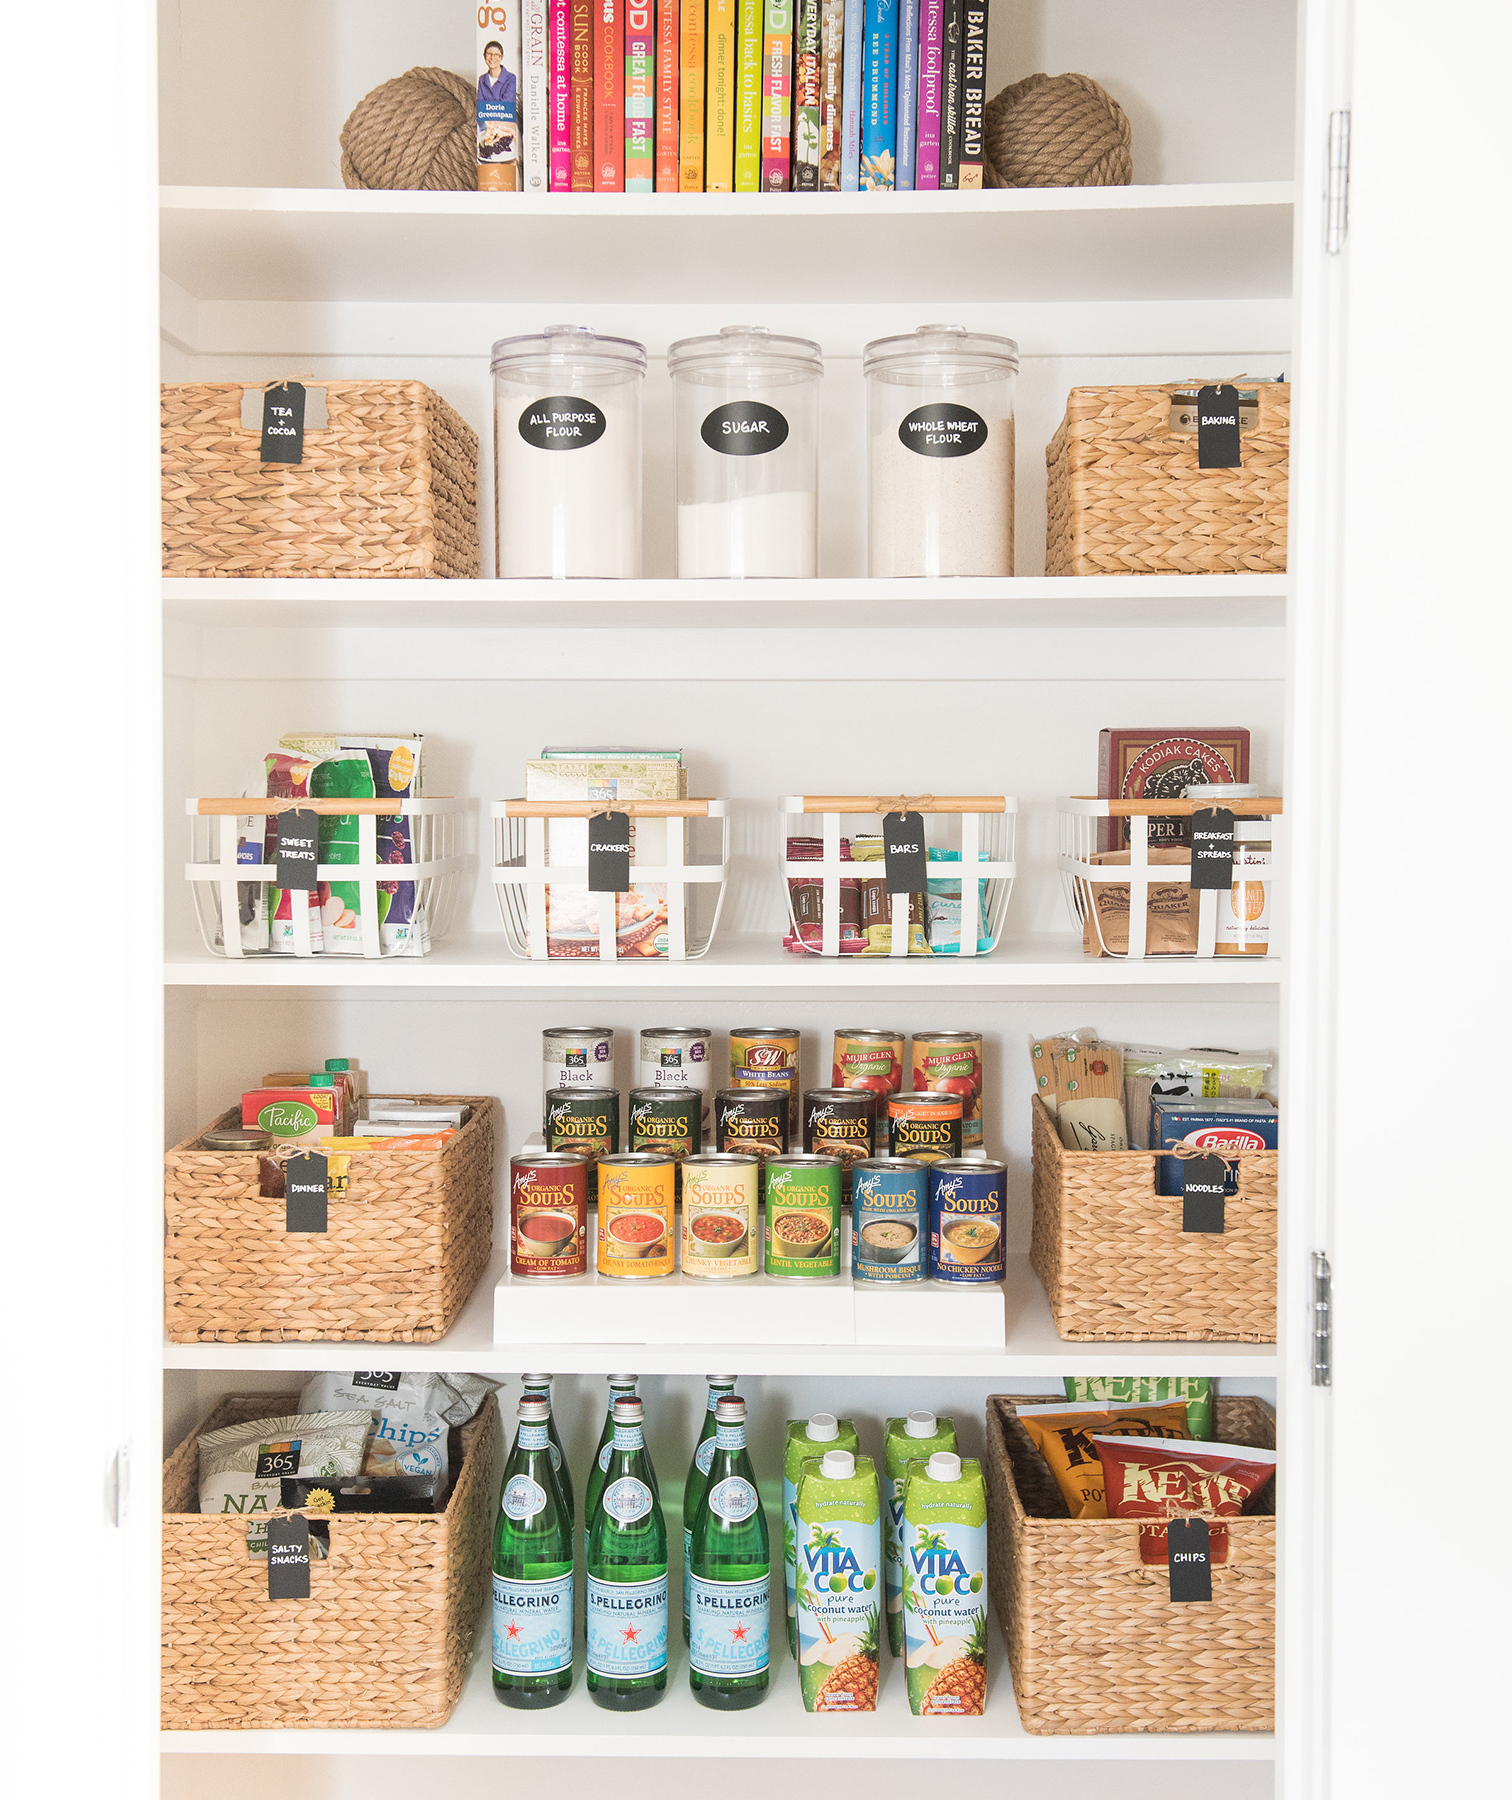 NEAT Method shelves with multiple organizers